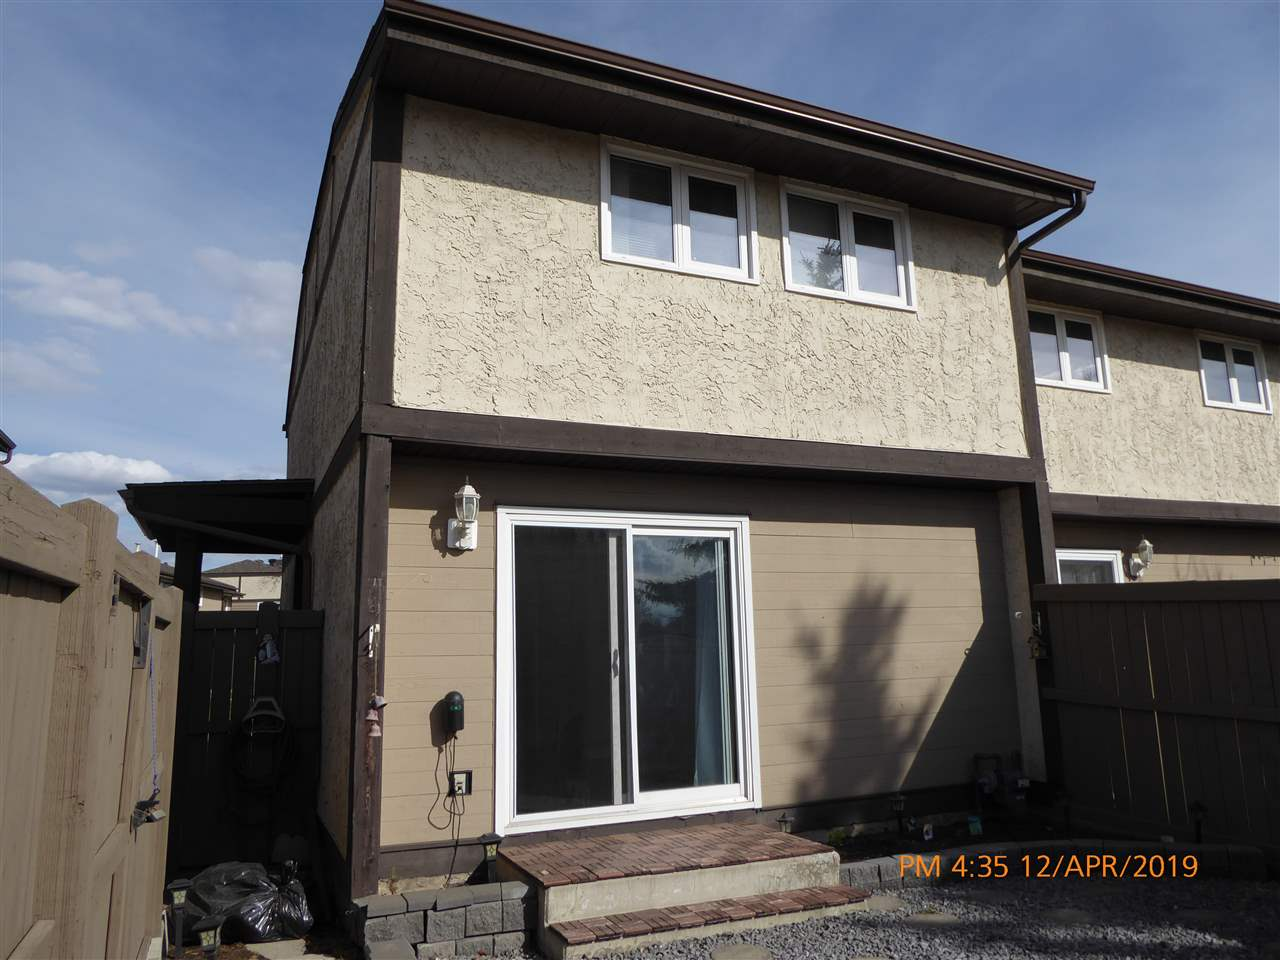 Very immaculate and well-maintained 3-Bedroom, 1090 Sq Ft, 2-Storey End Unit Townhouse Condo in a great location - Clareview, Gryphon's Walk complex. New laminate flooring throughout, and new windows and doors. Close to all amenities including the LRT, with great access to the Yellowhead(Highway #16) and the Anthony Henday Freeway. Great starter family home!!